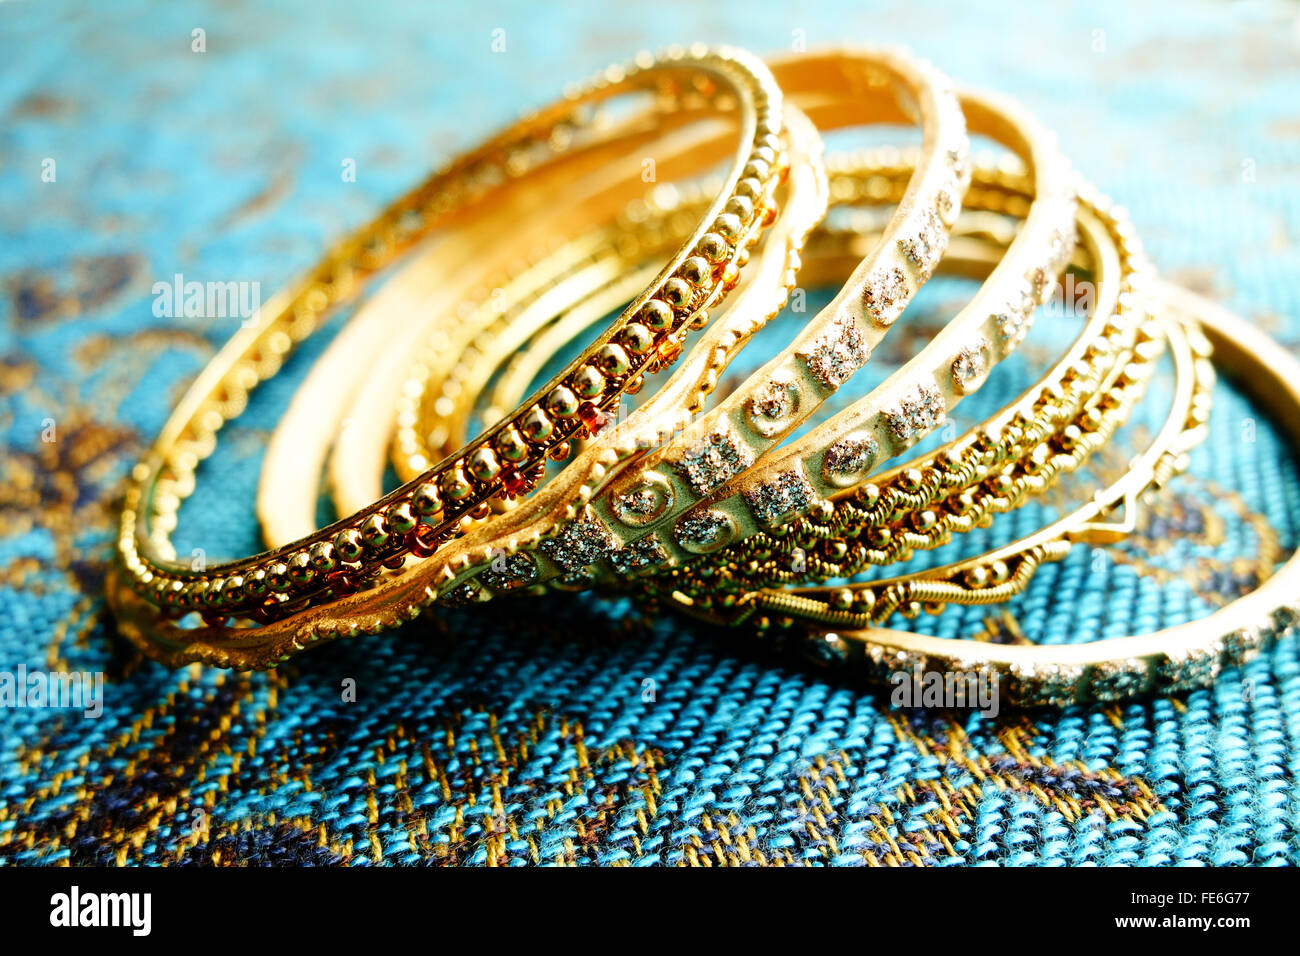 Close-Up Of Gold Colored Bangles On Blue Mat - Stock Image